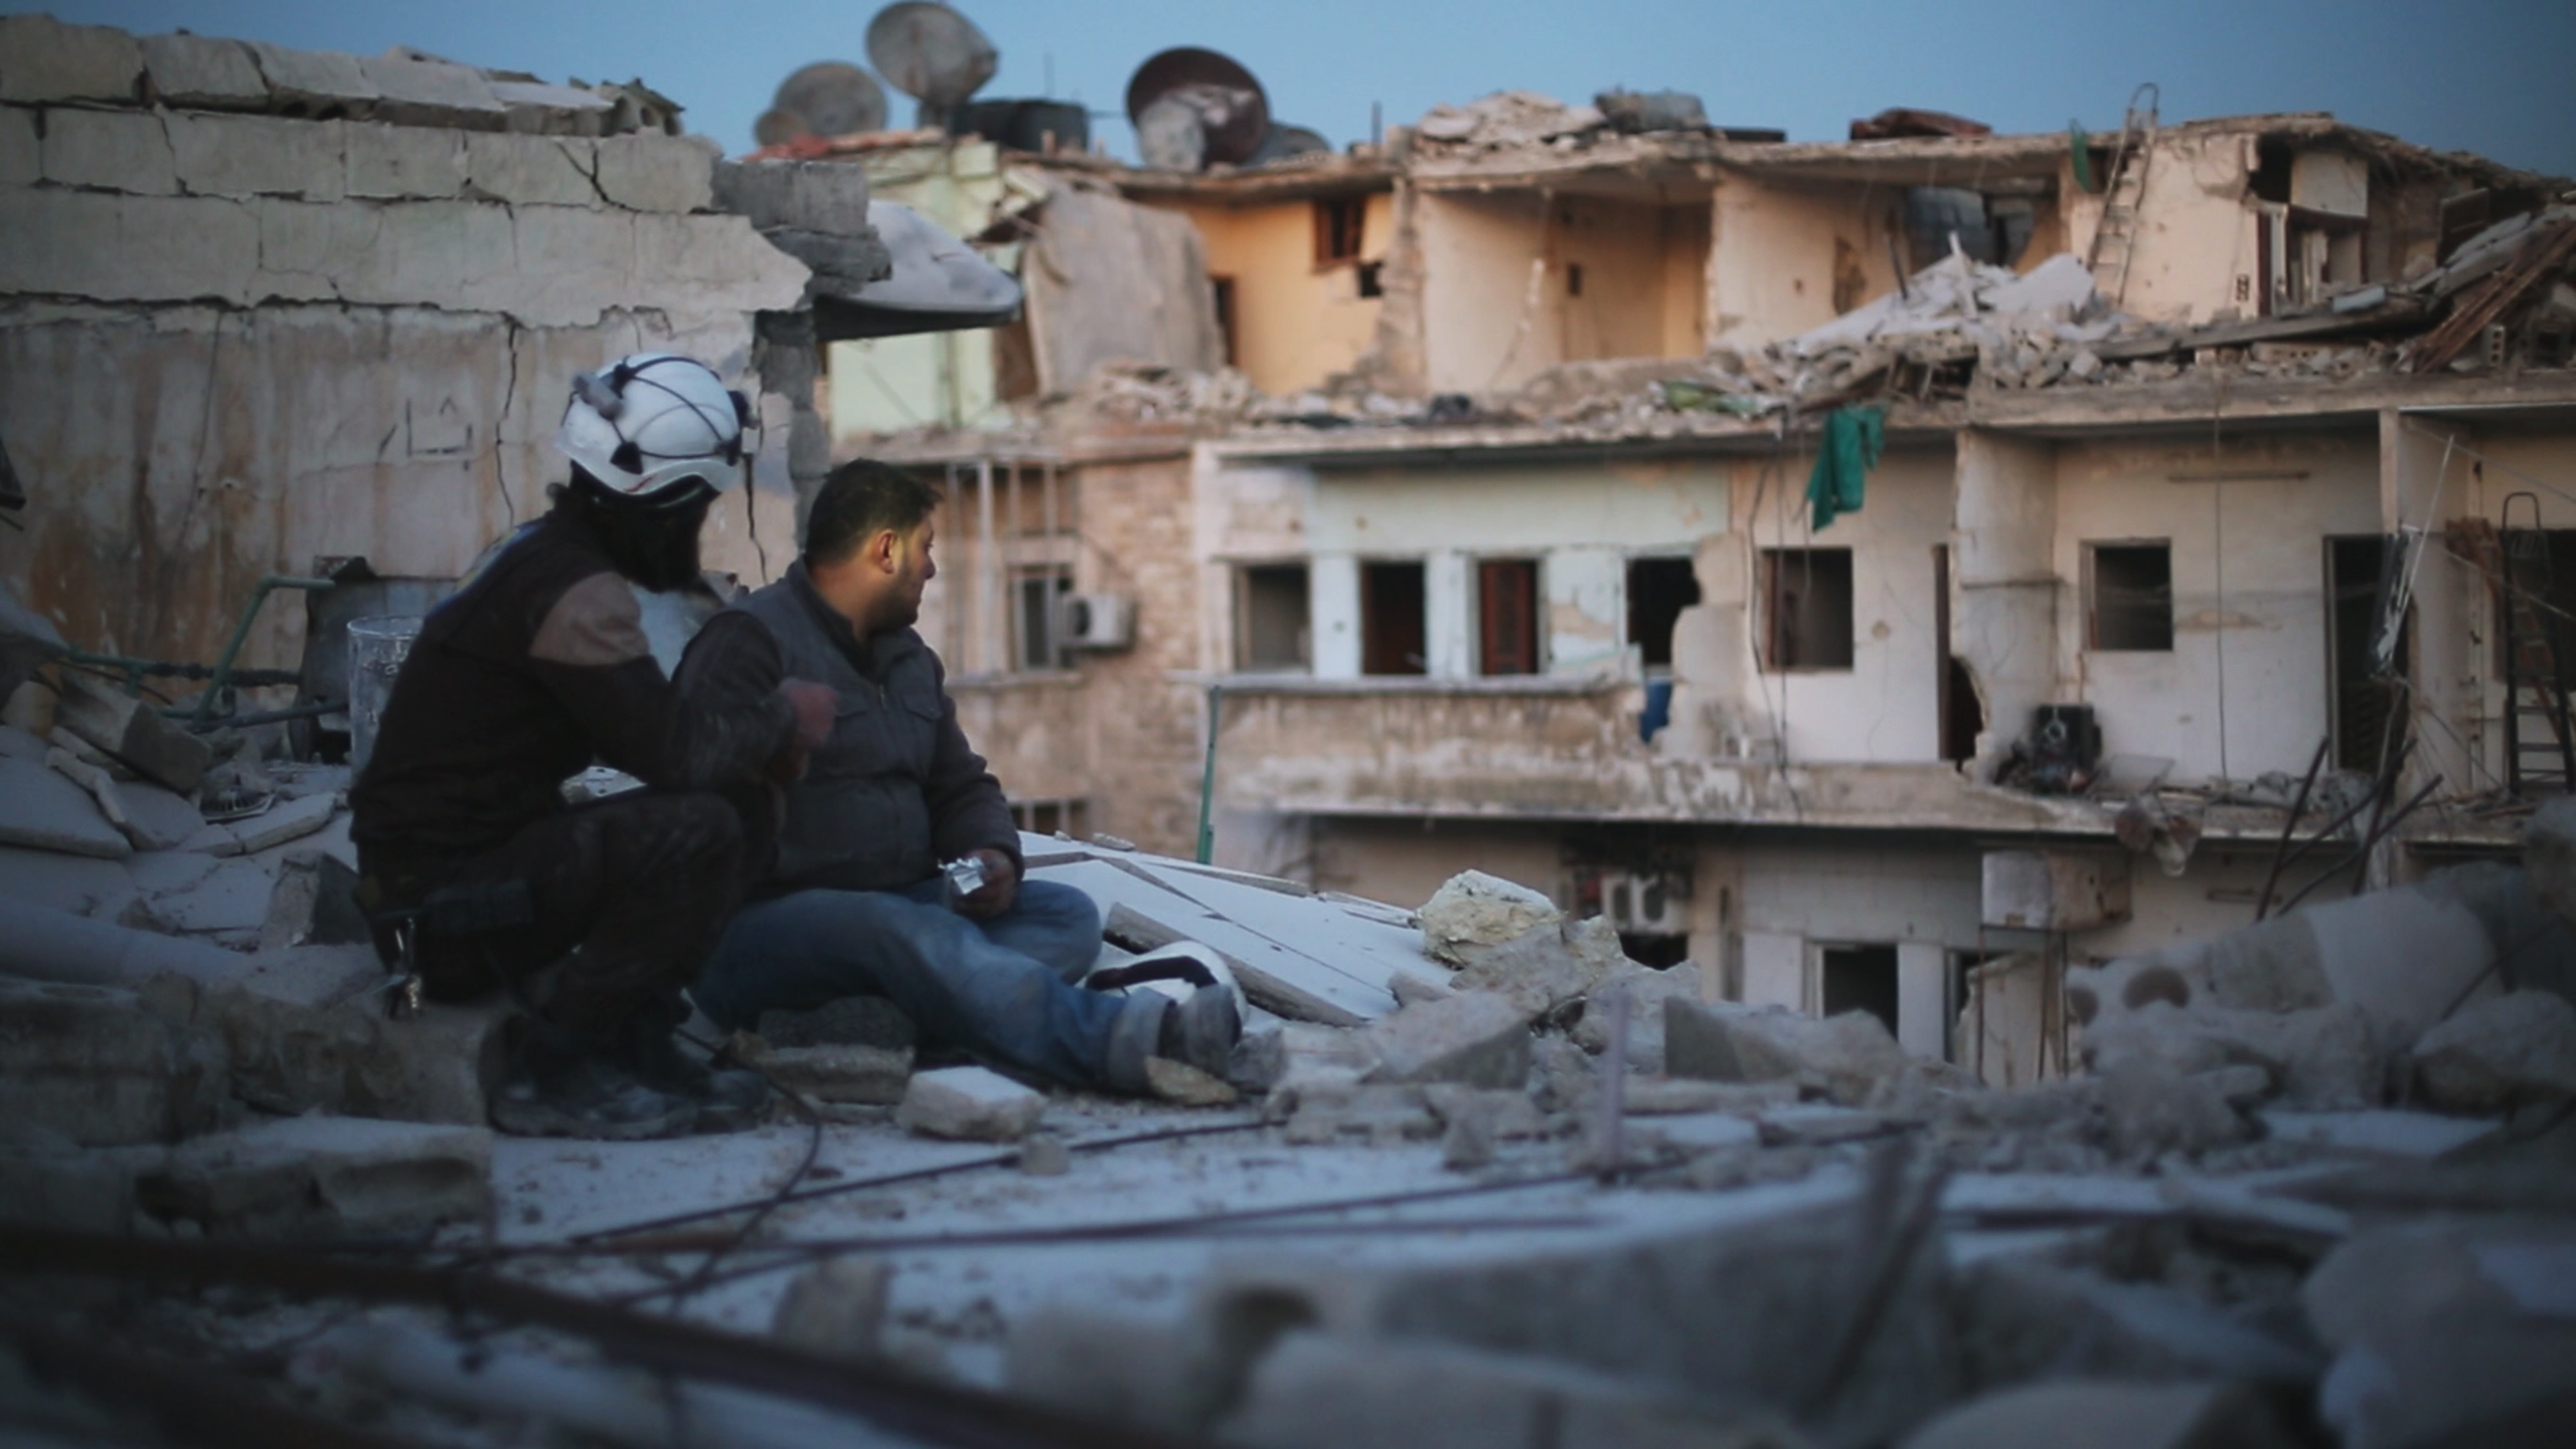 cphdox-2017_-_last_men_in_aleppo_-_main_still_357740.jpg